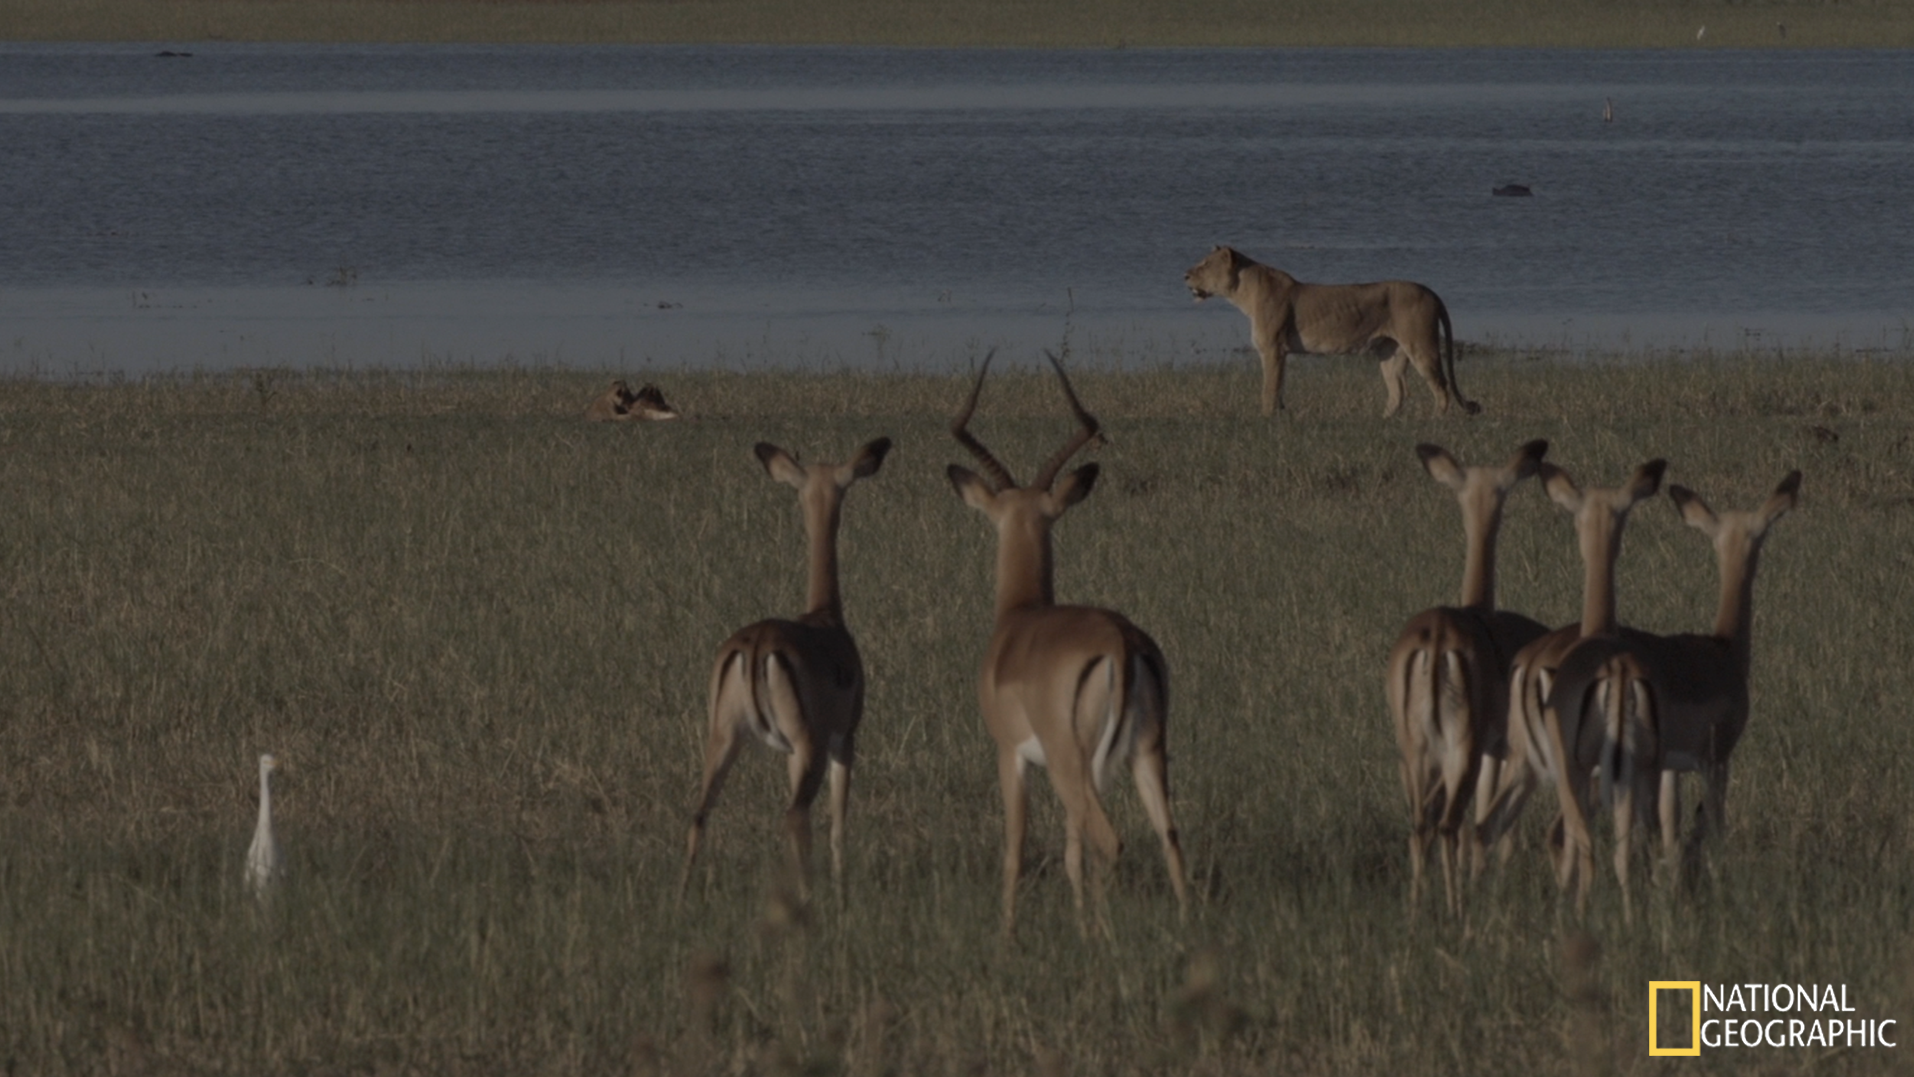 Movie Still - Impala vigilant to mother and cubs